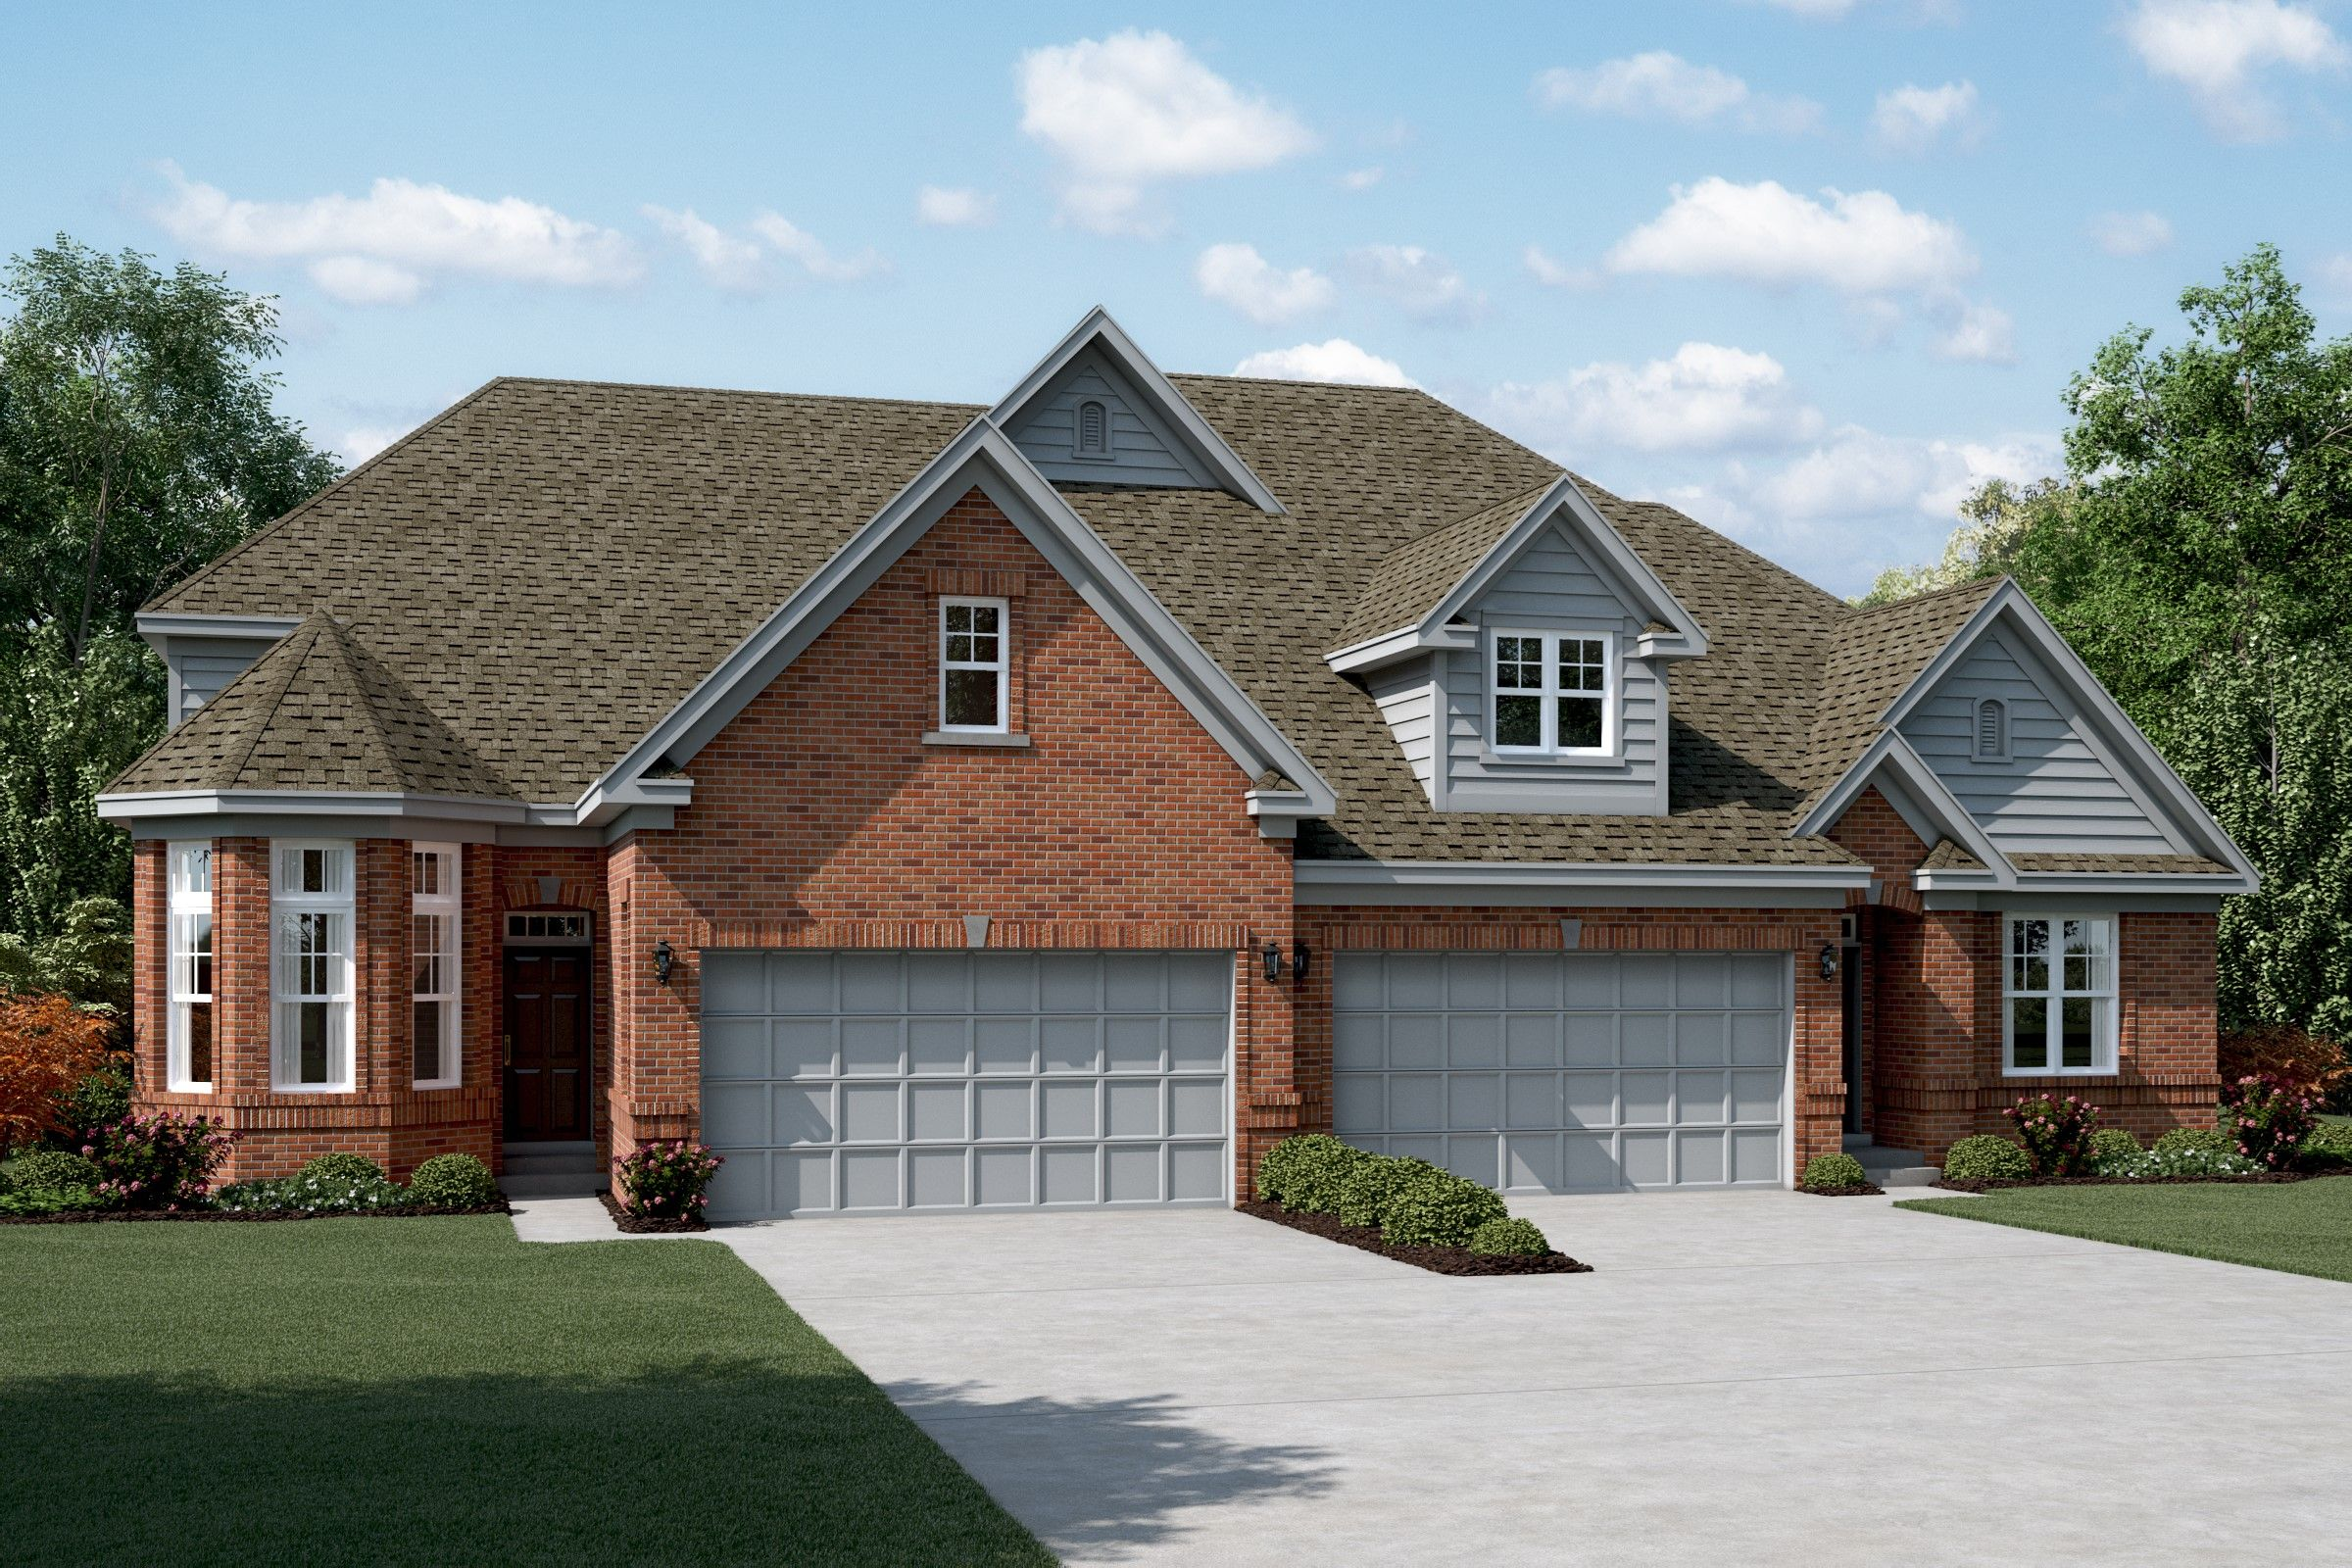 New homes naperville il homemade ftempo for Punch professional home design suite platinum v12